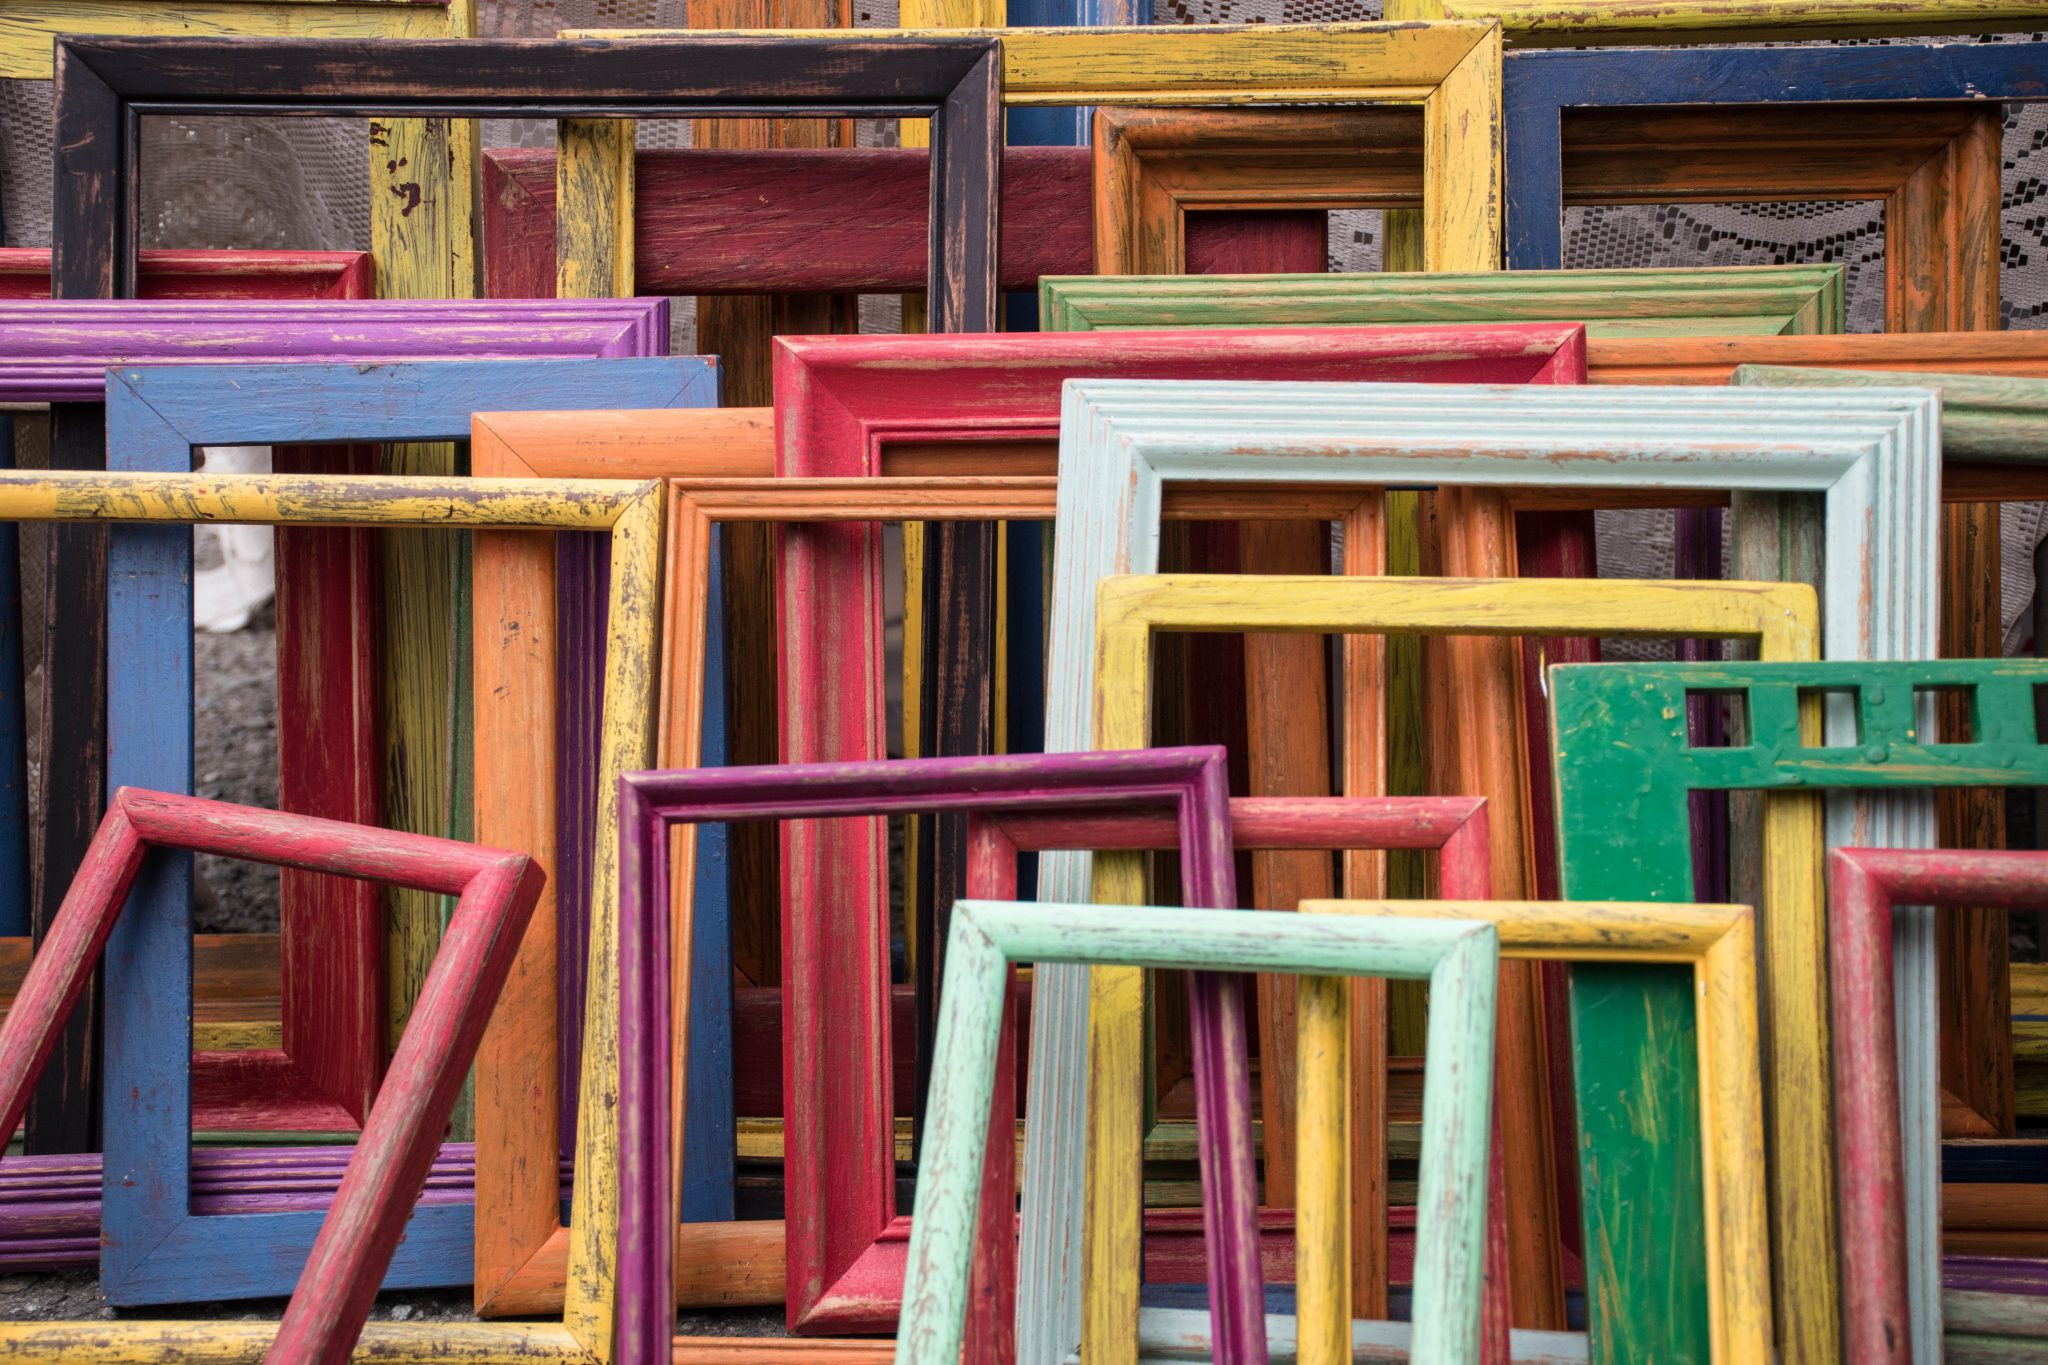 Stack of picture frames in multiple colors and sizes